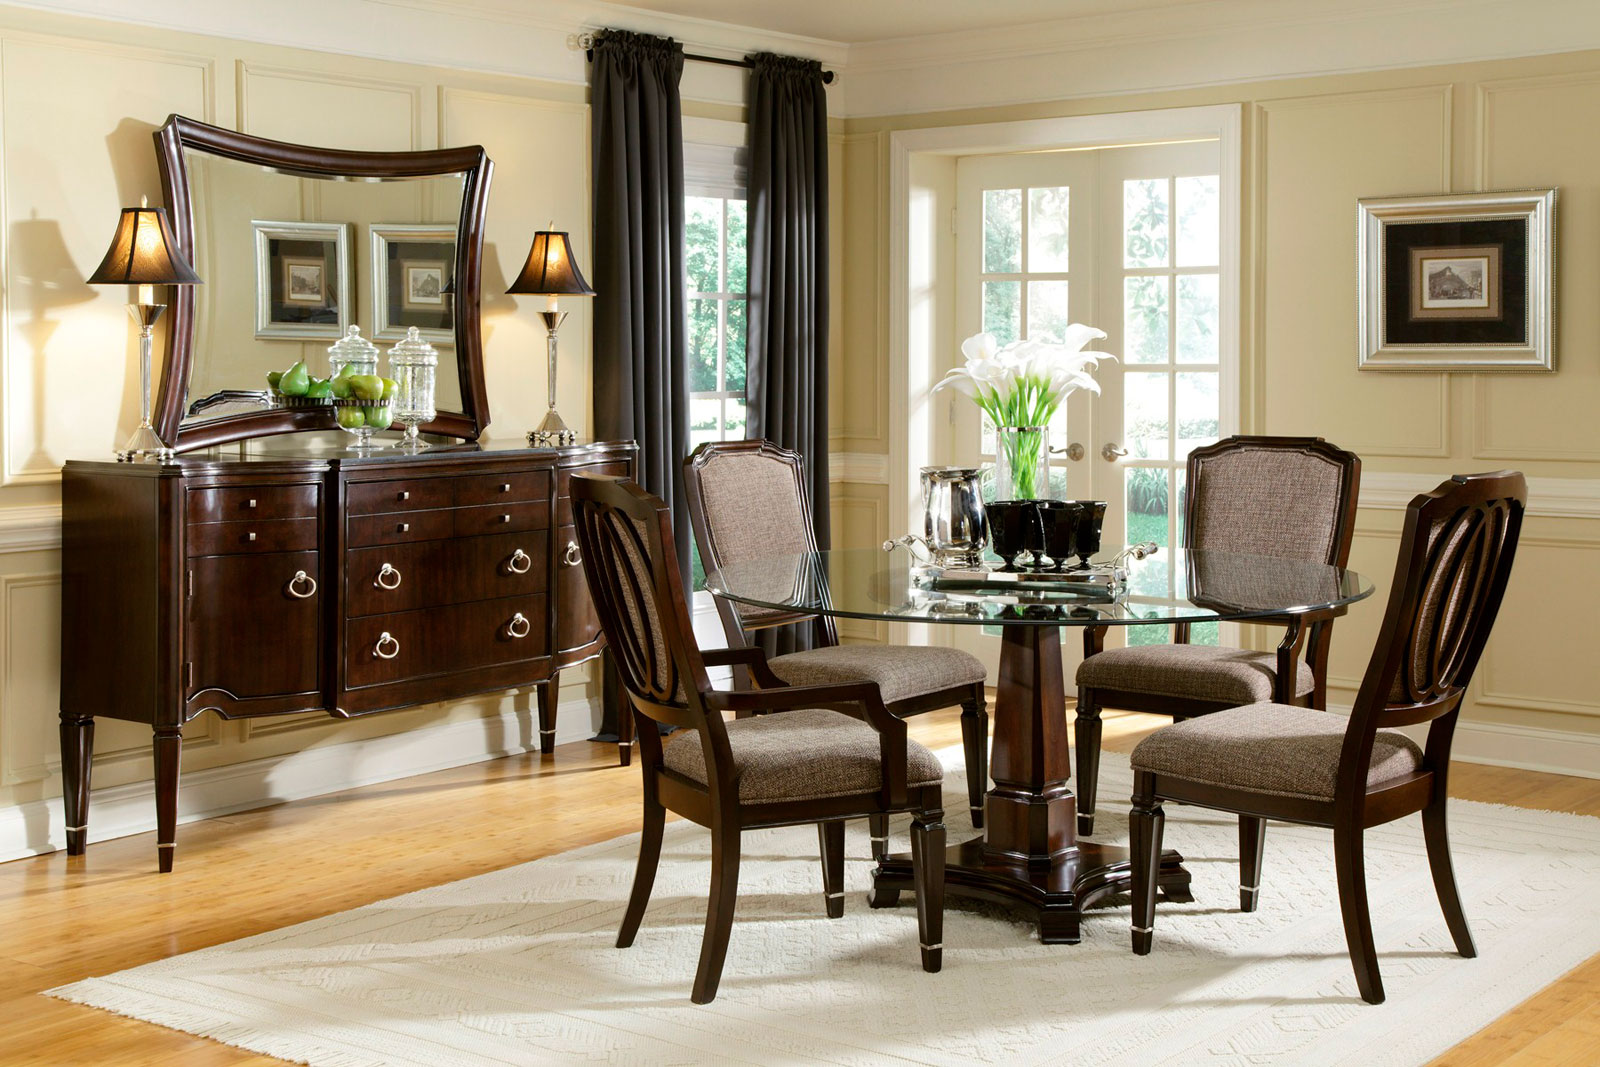 dining room design round table. Interesting Dining Room With Circle Glass Table Also Charming Chairs Design Round